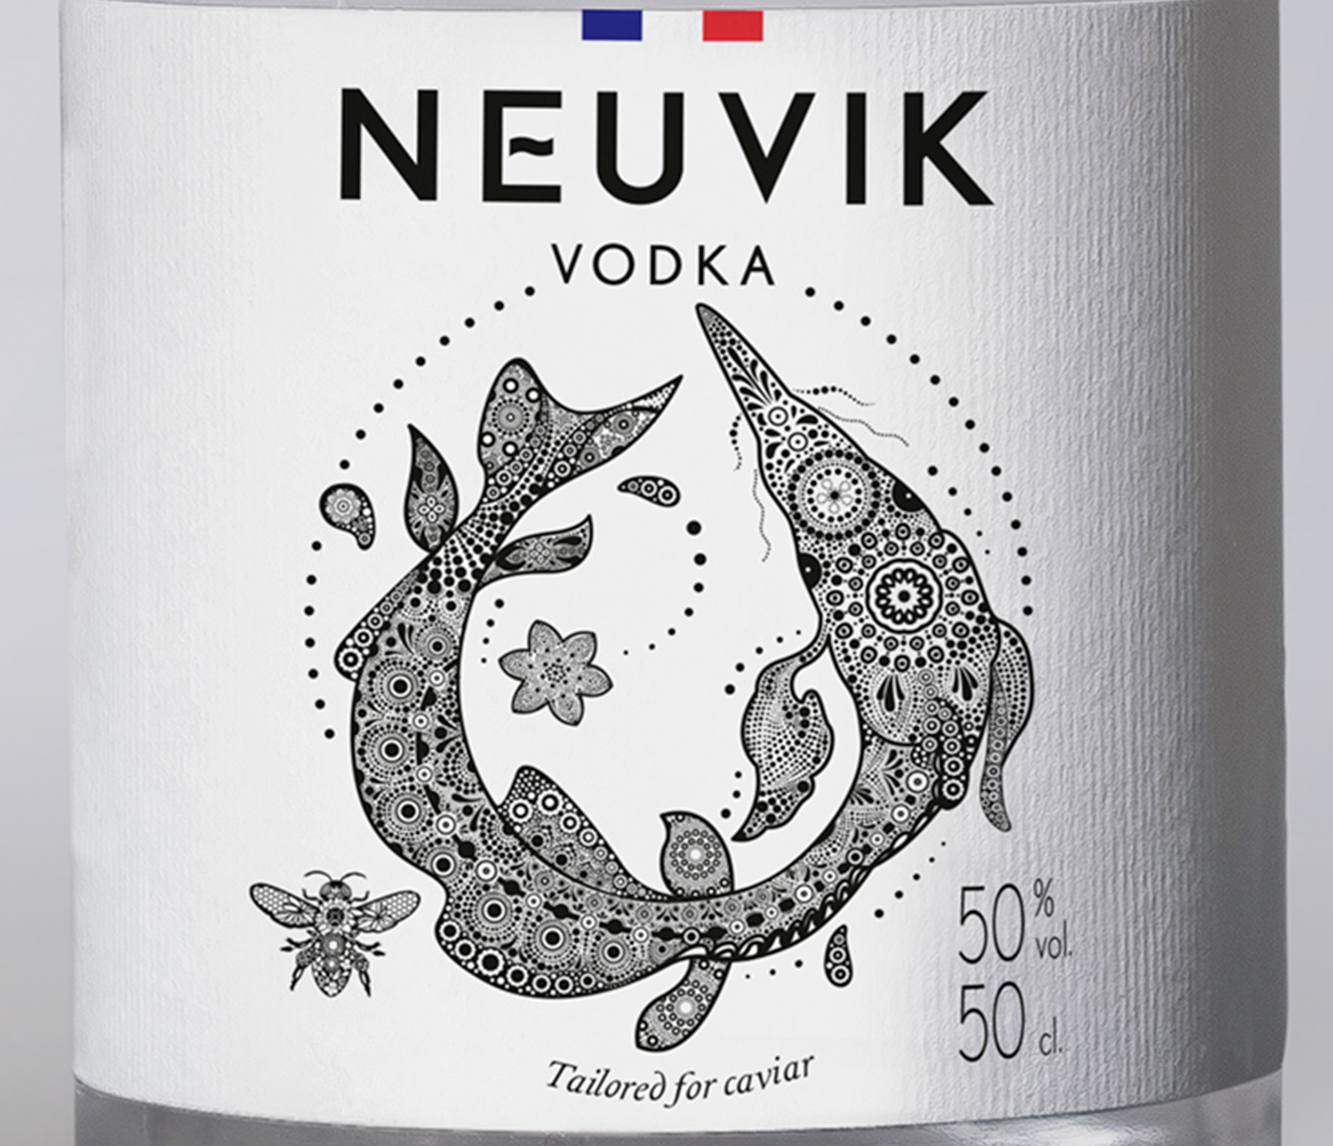 esturgeon vodka Neuvik